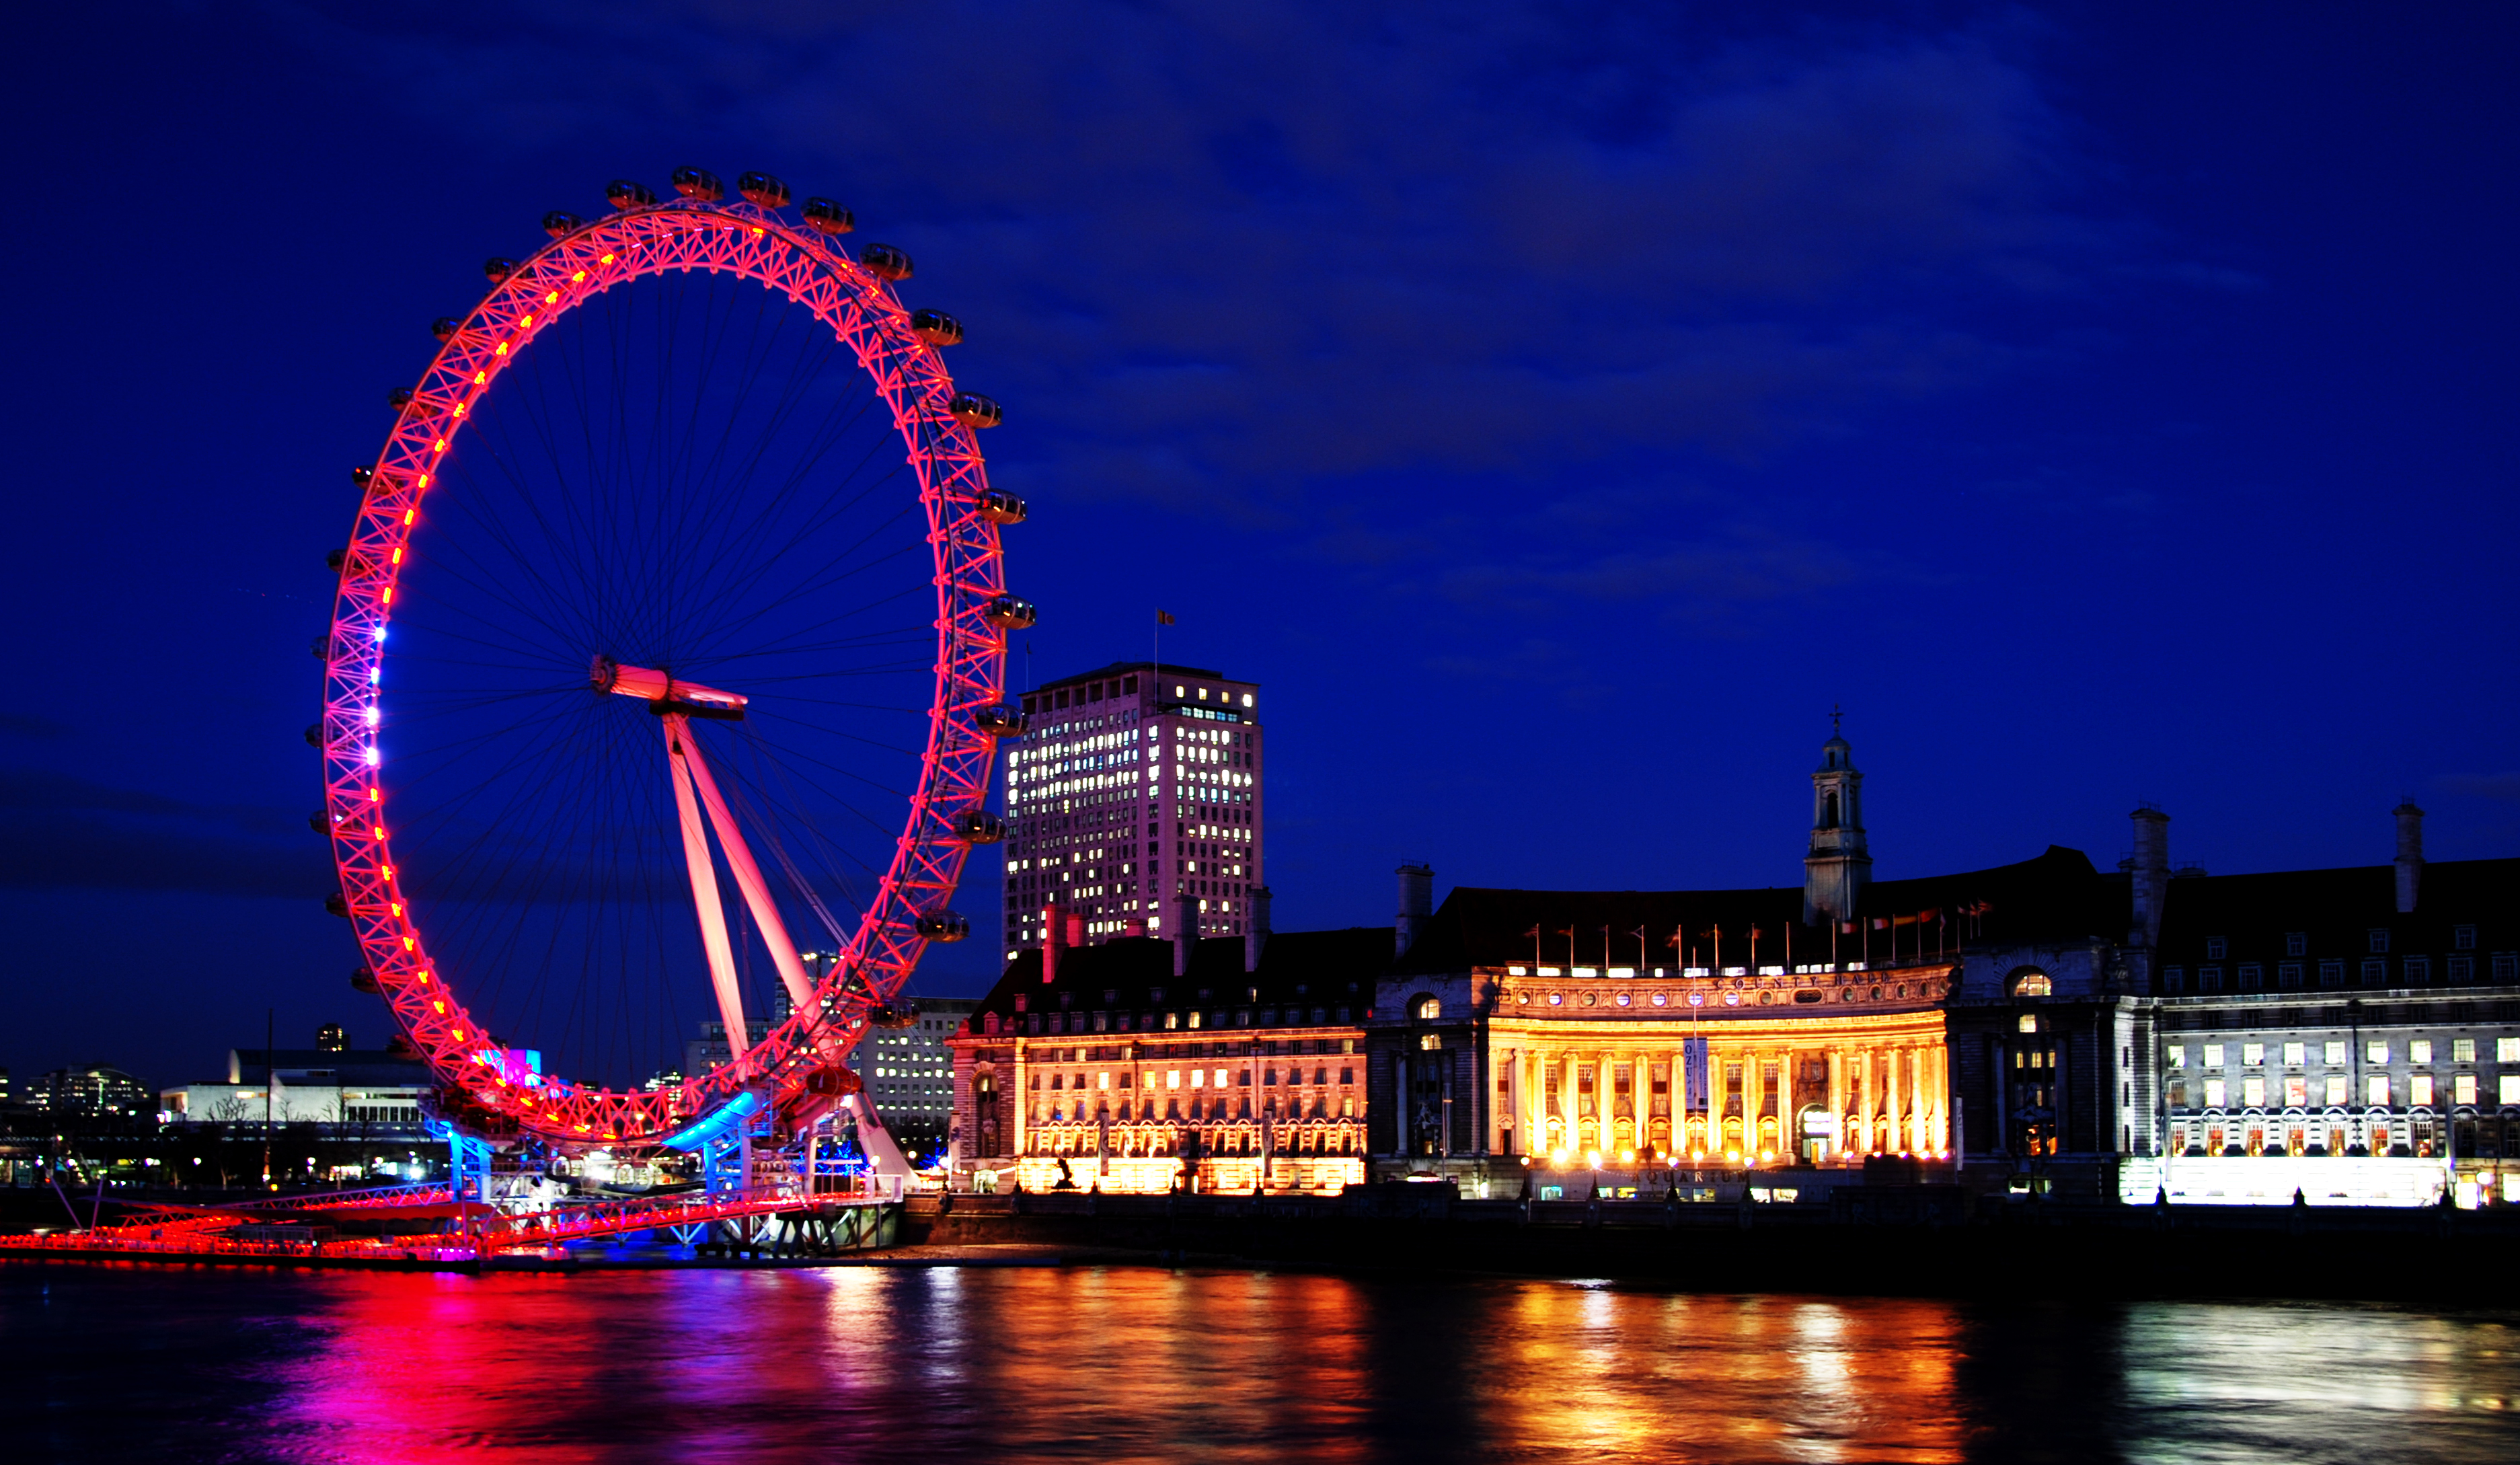 red light on london eye at night